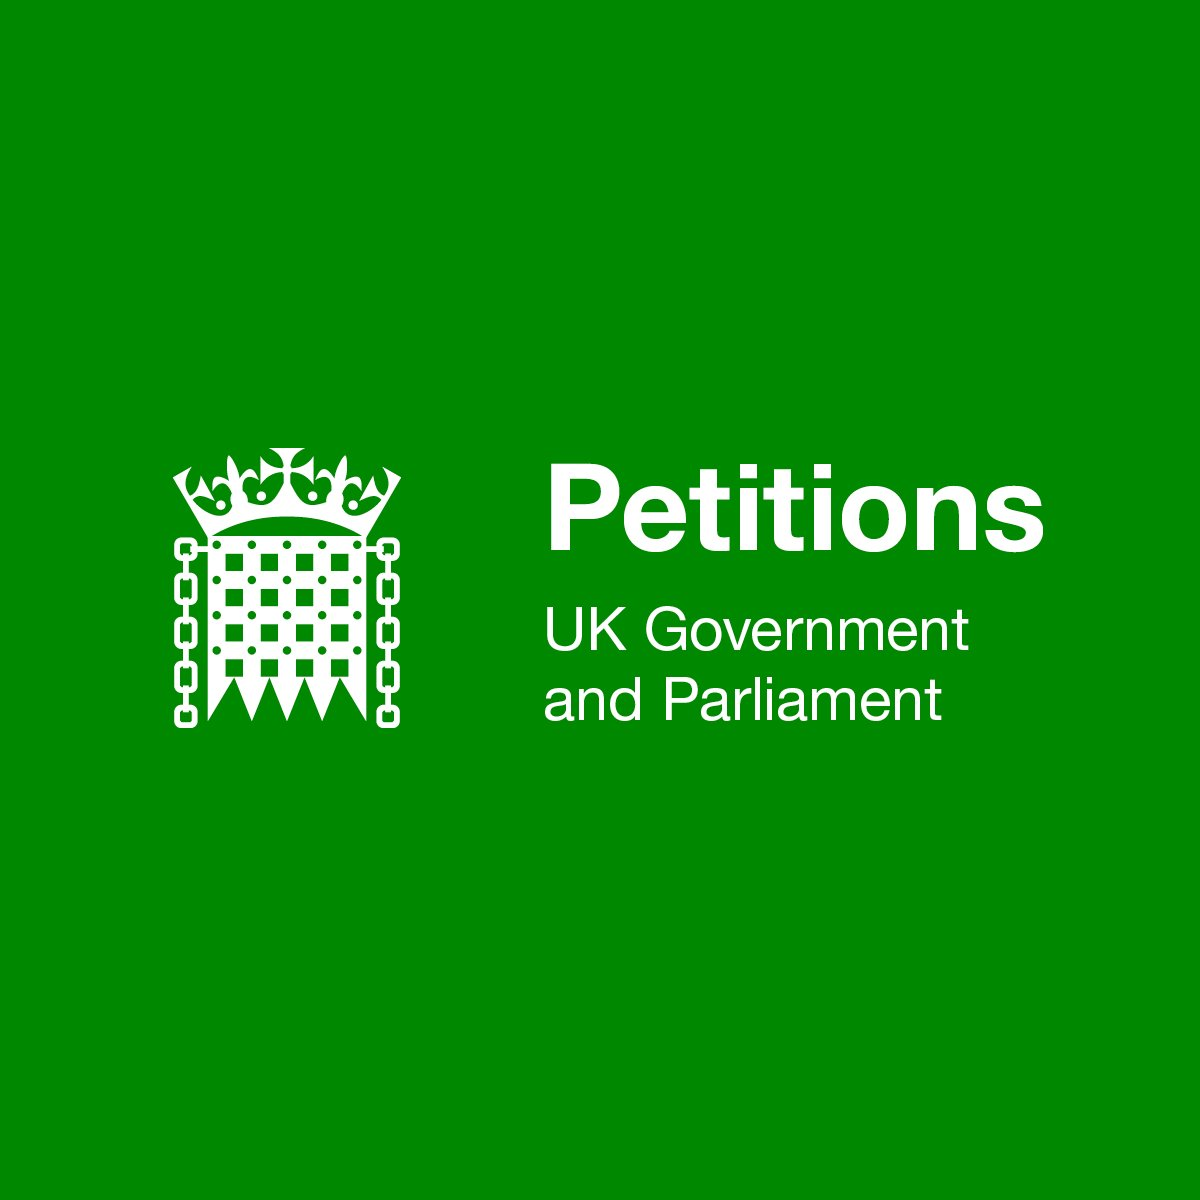 UK stoners someone made a petition to give the public the option to legalise cannabis, let's get it to parliament!